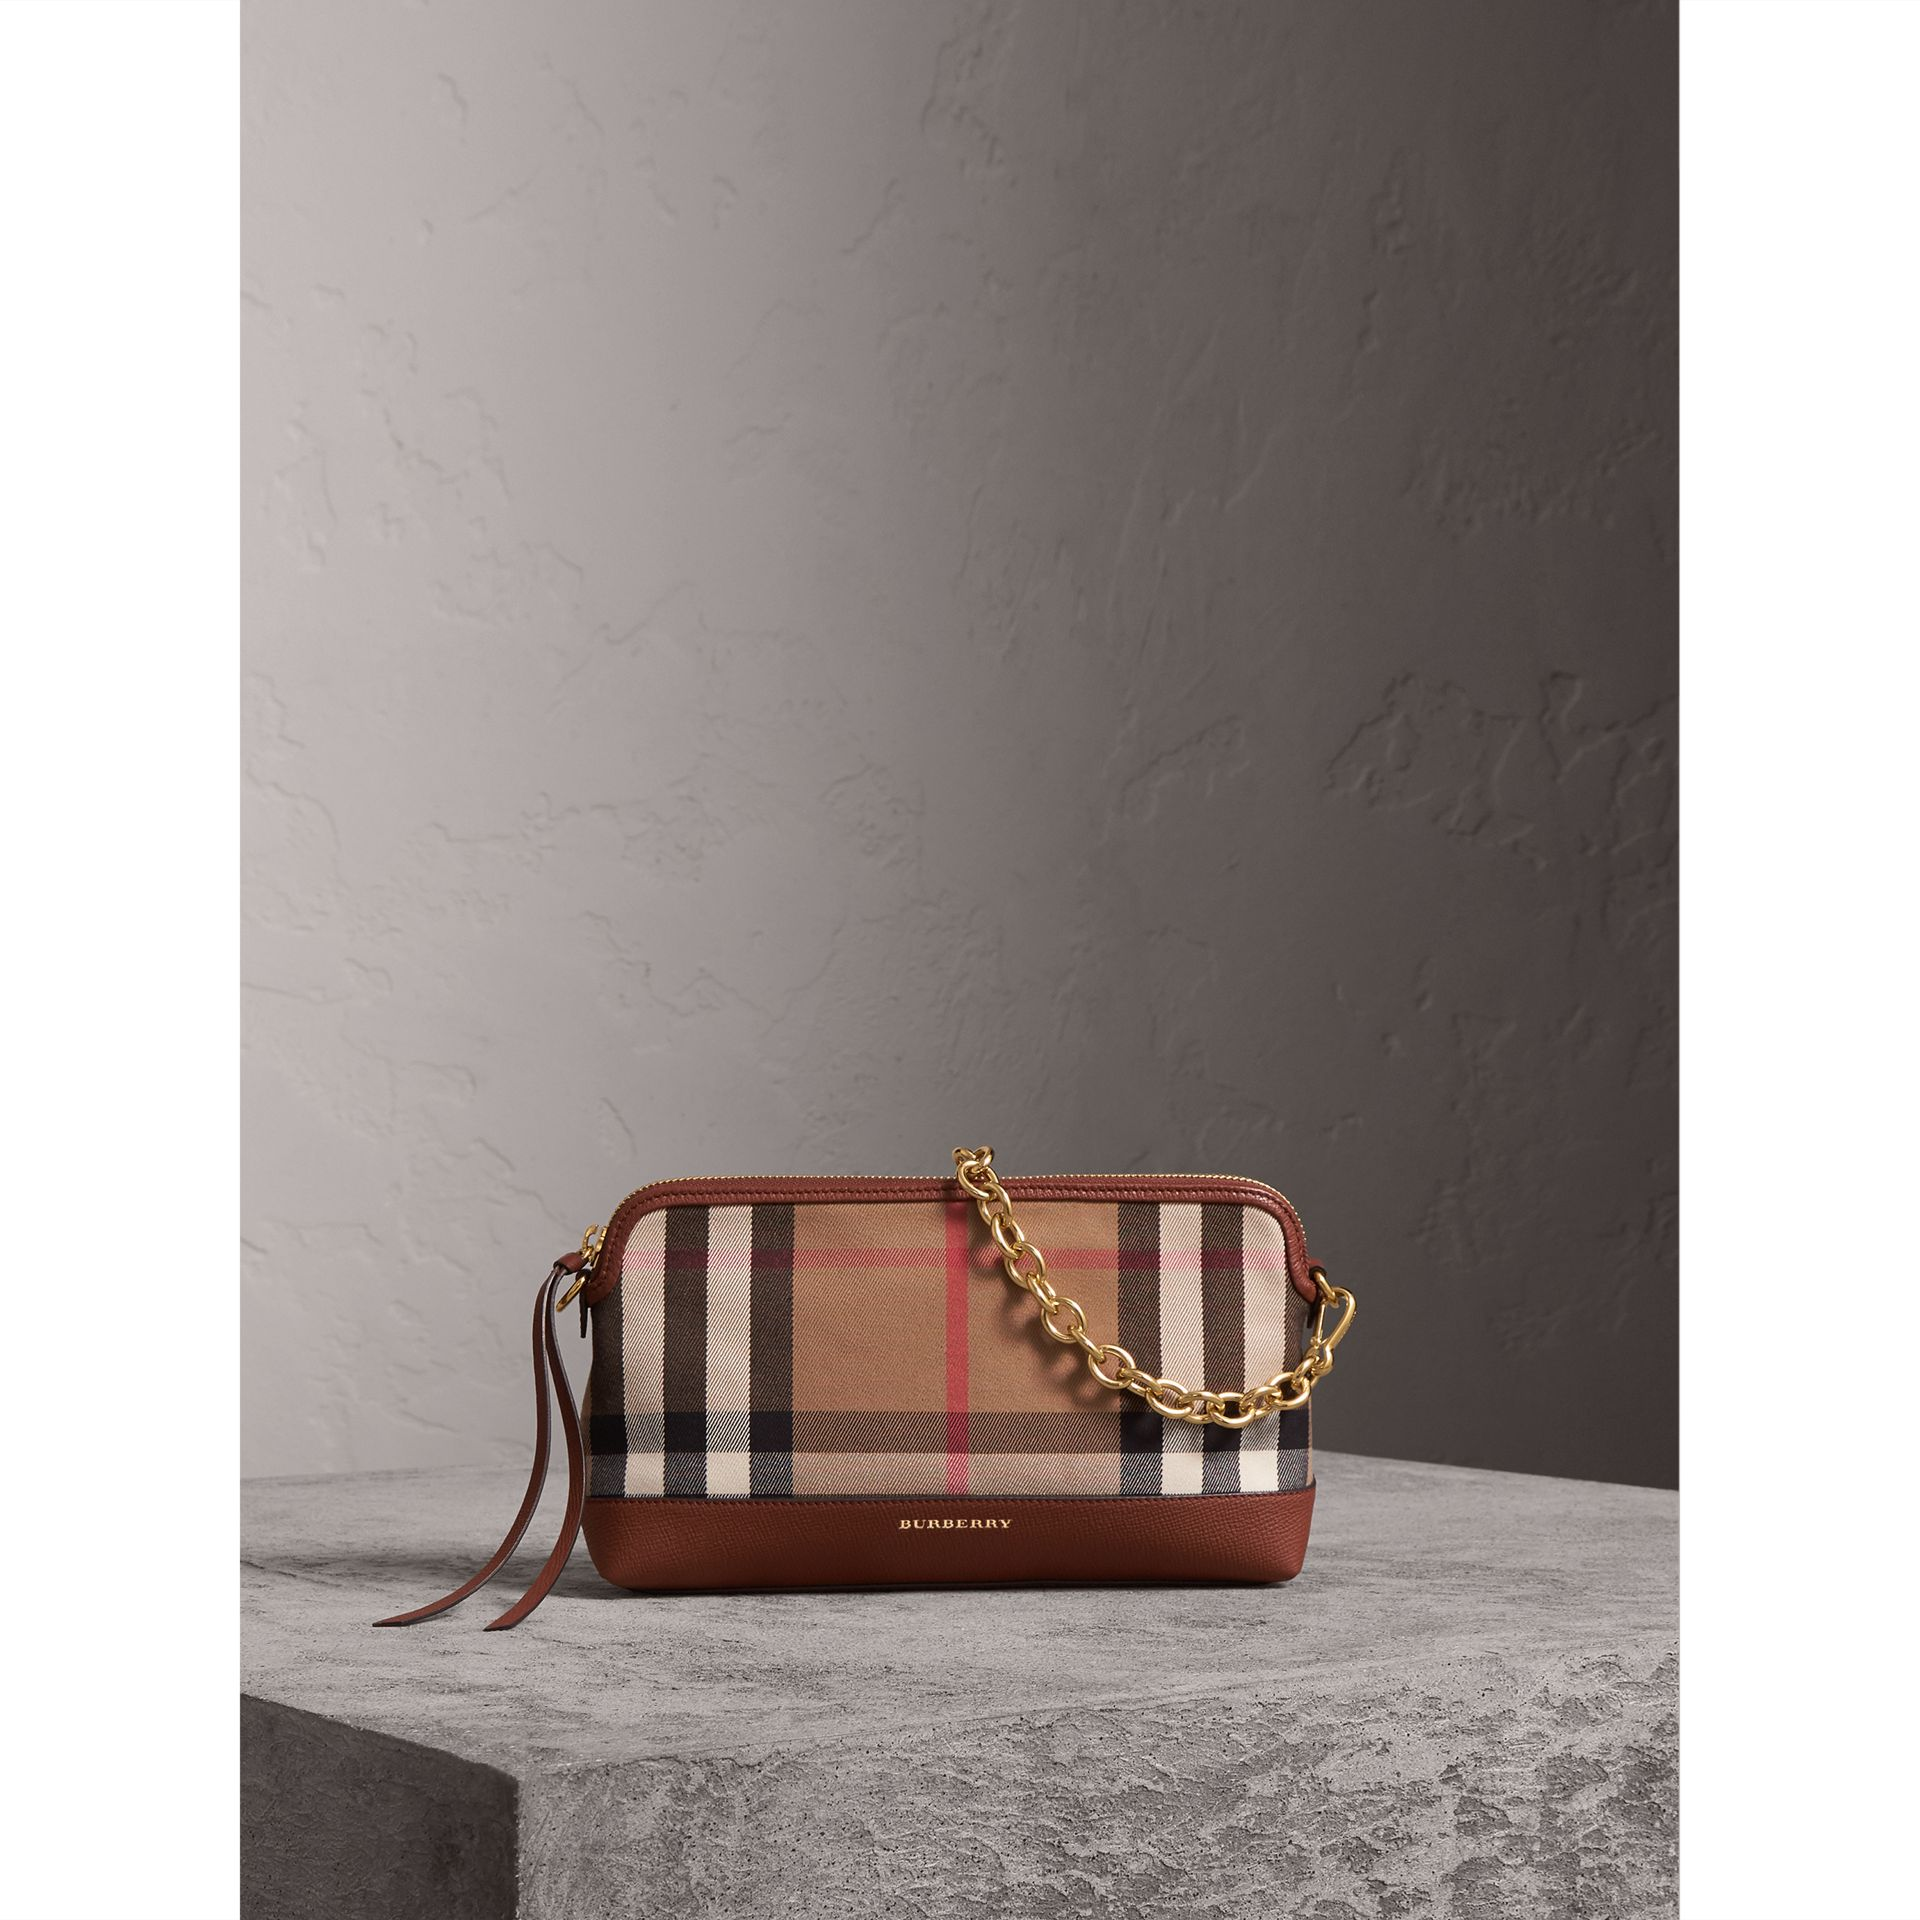 House Check and Leather Clutch Bag in Tan - Women | Burberry - gallery image 1